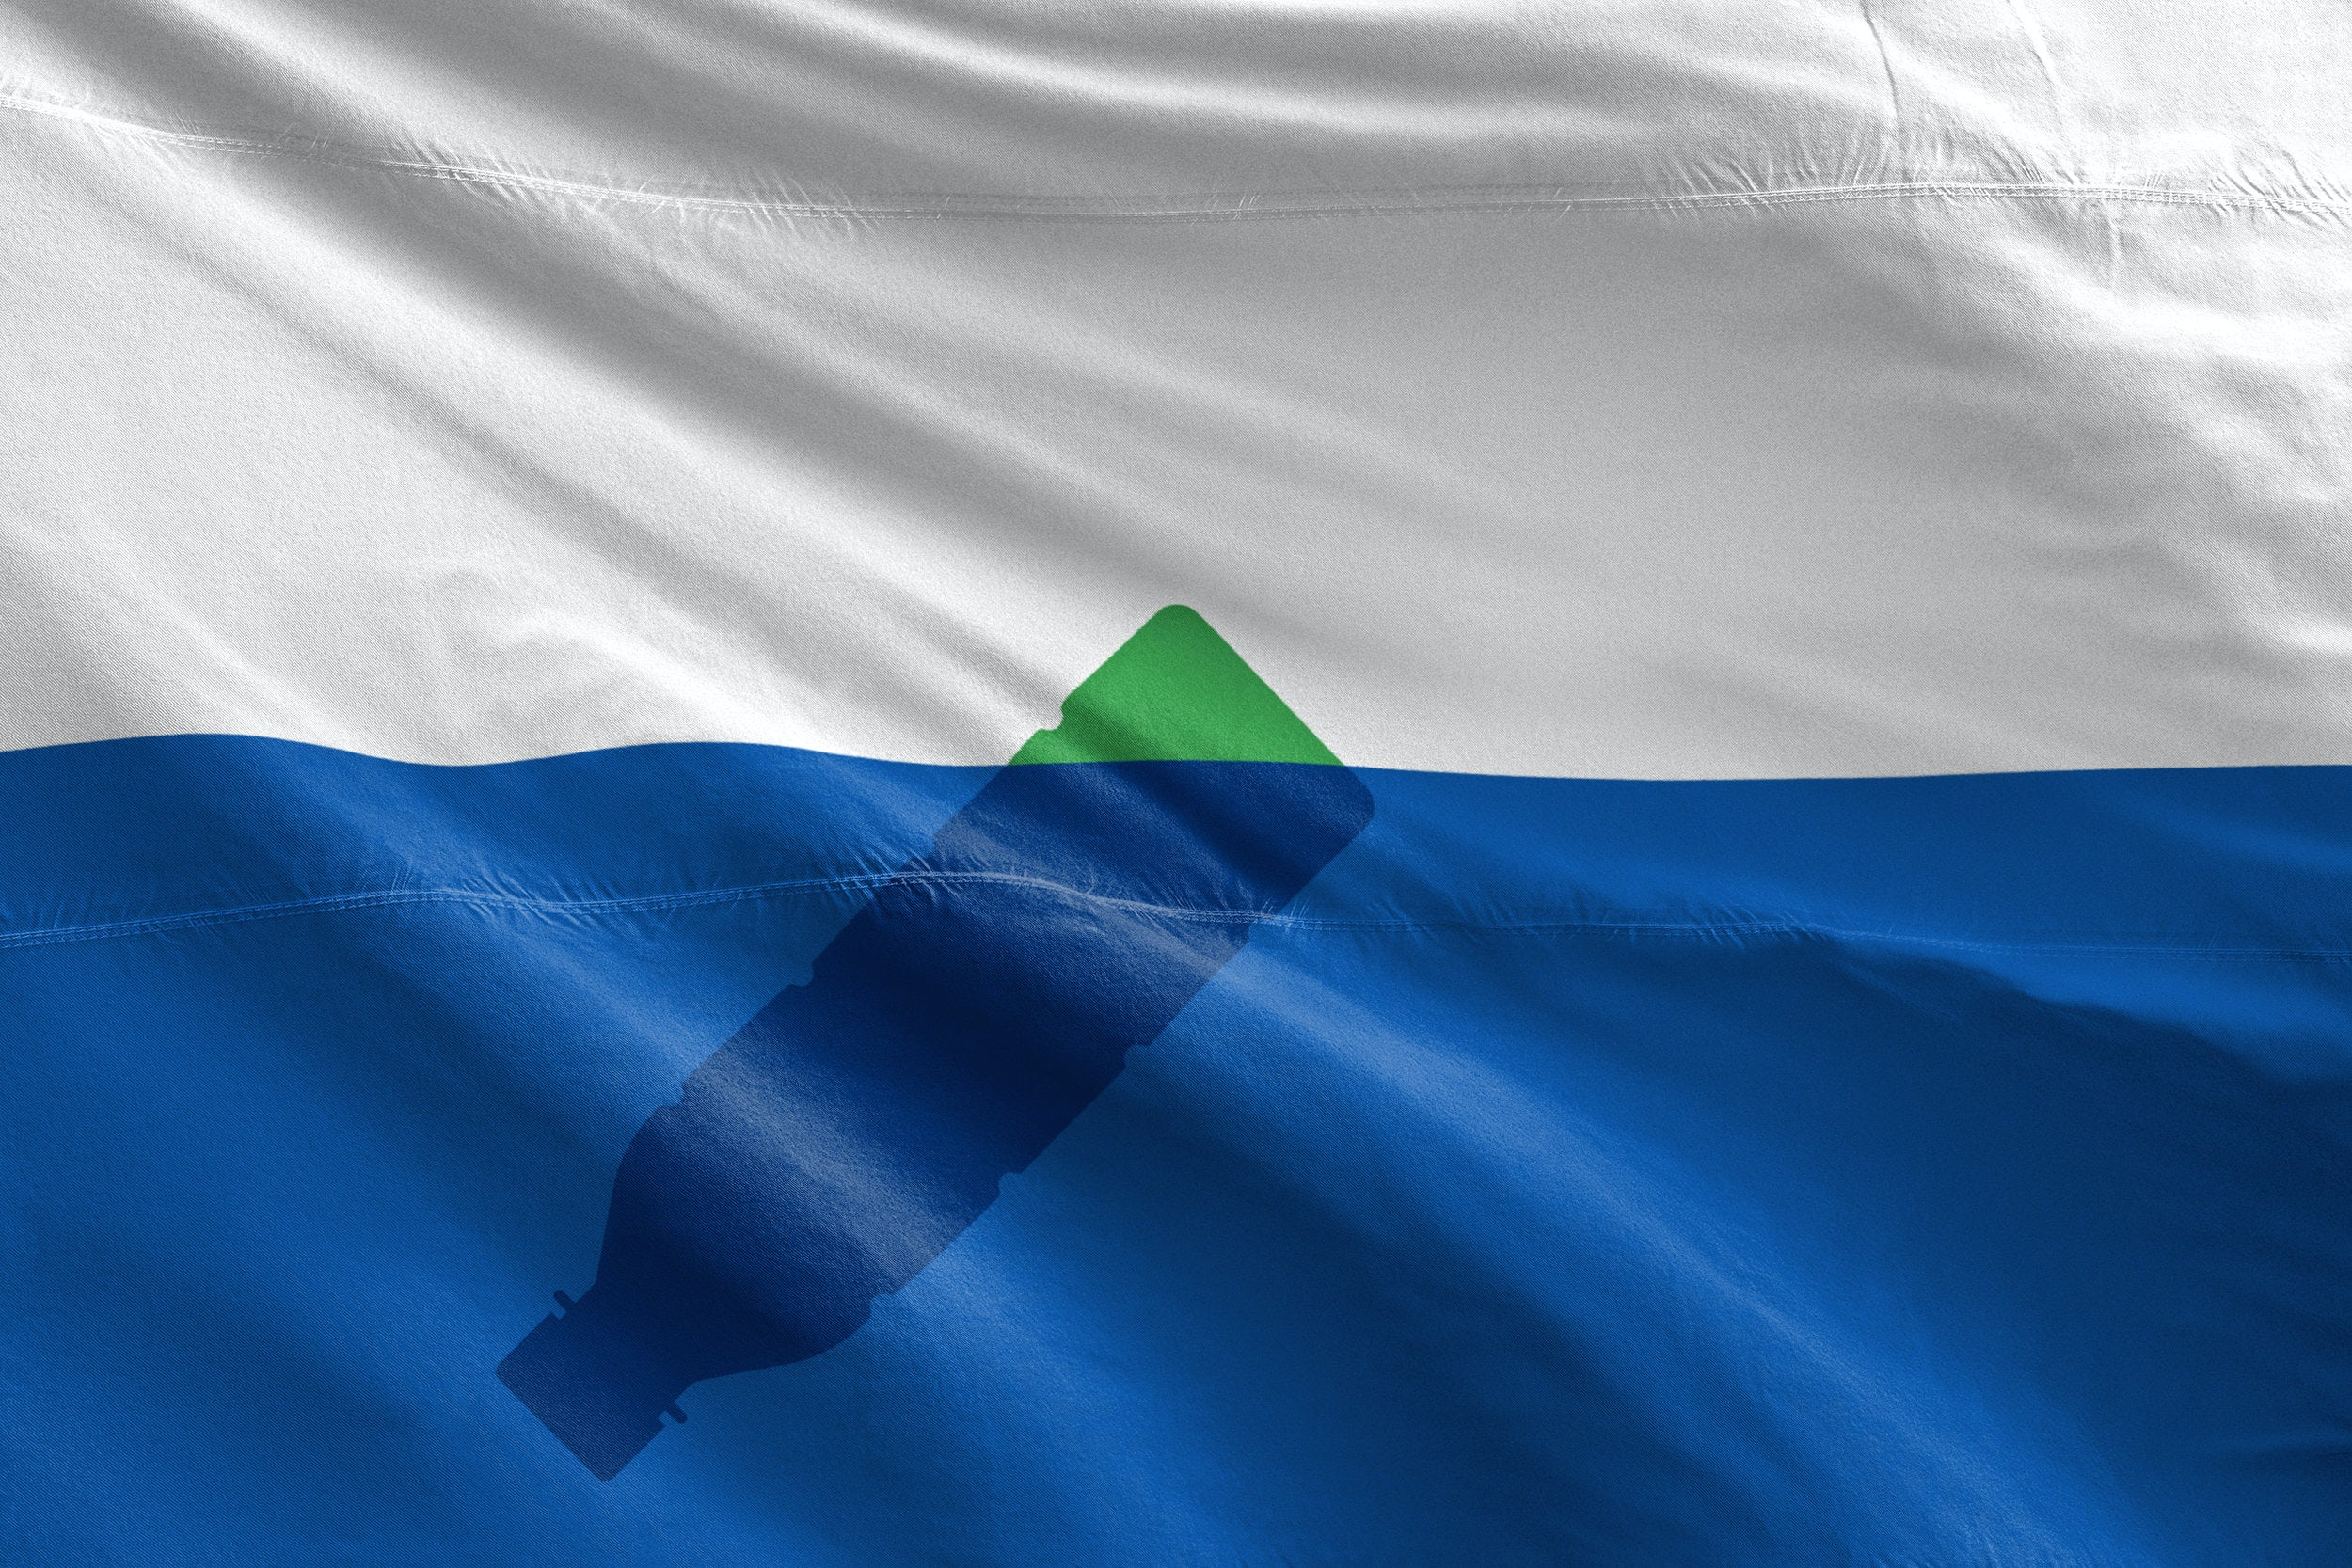 The Trash Isles flag, designed by Mario Kerkstra